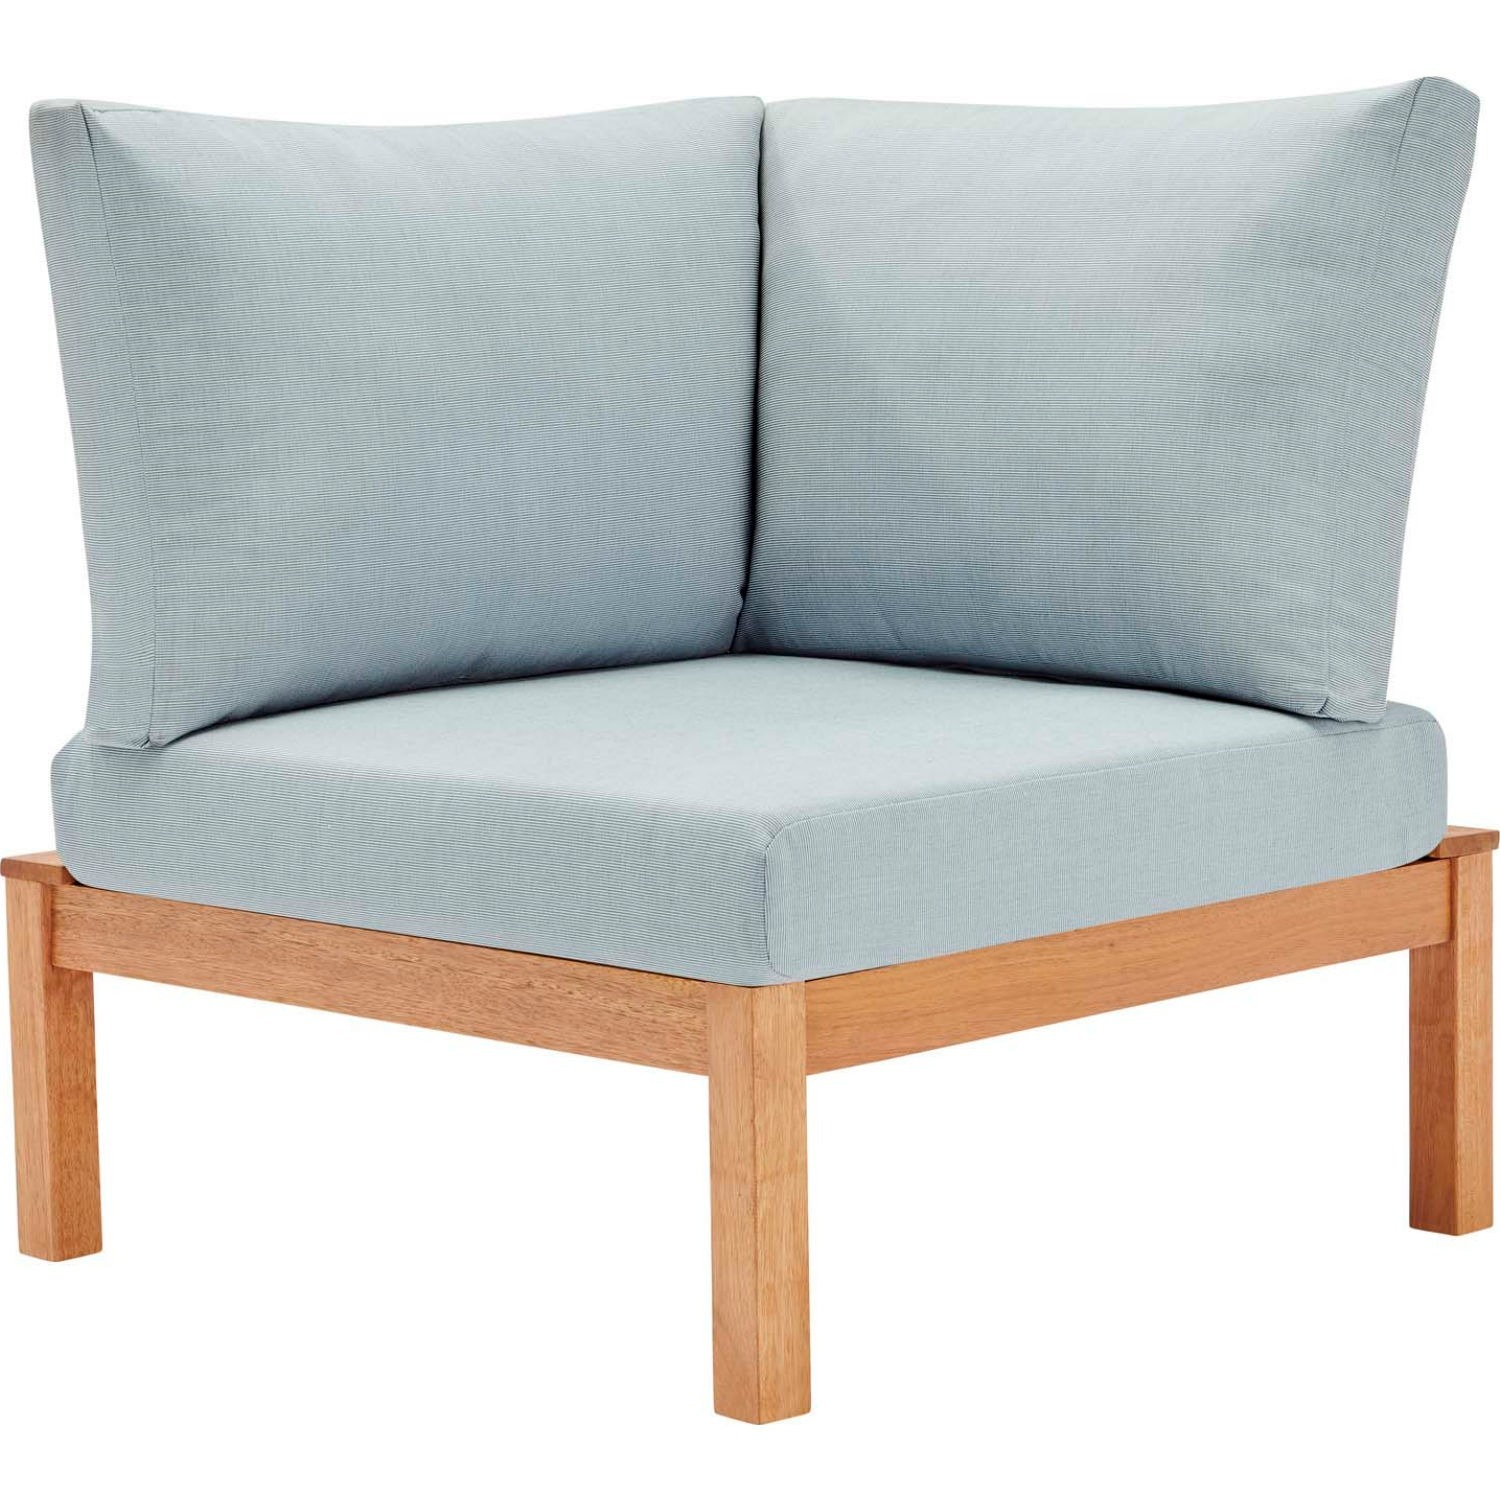 3-Piece Outdoor Sectional In Natural Light Blue - image-6